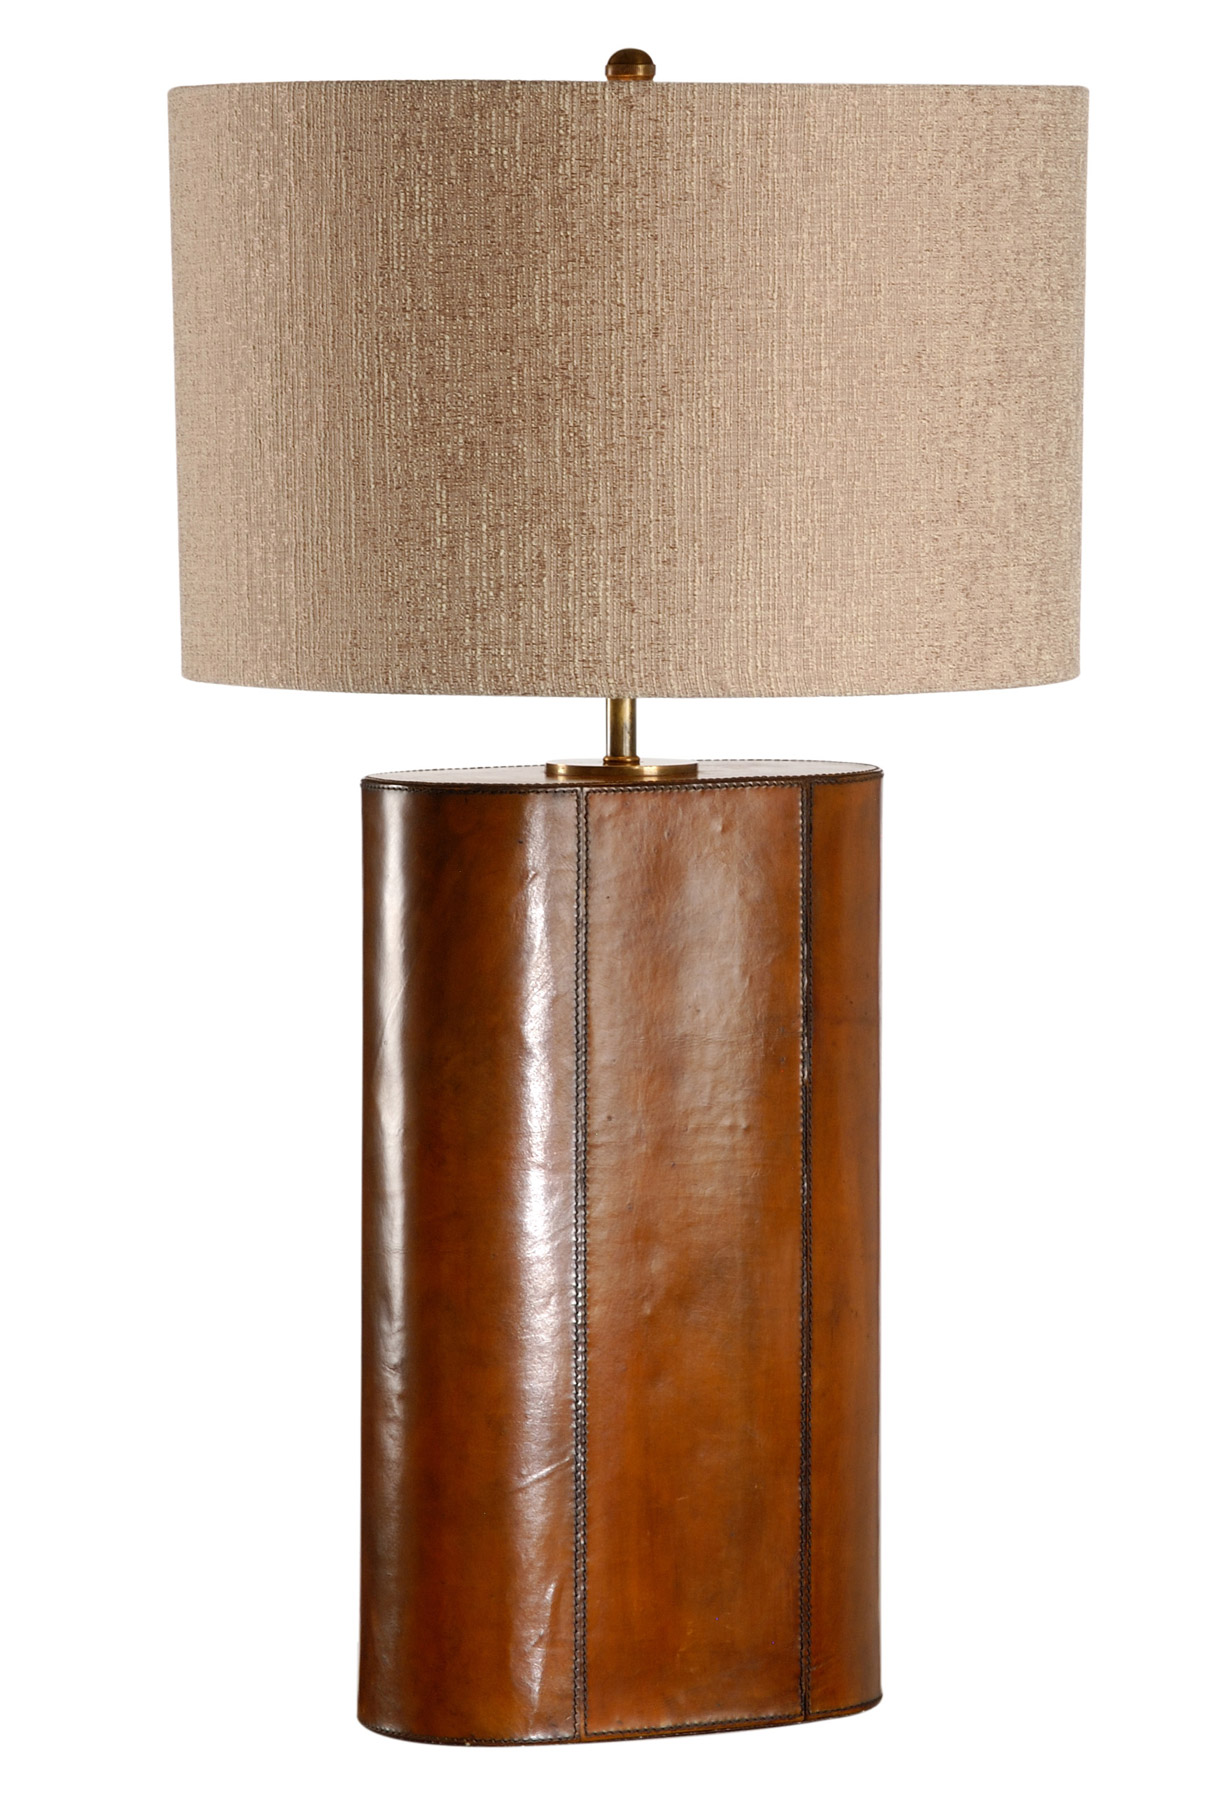 Cooper 65347 Stitched Leather Oval Base Table Lamp